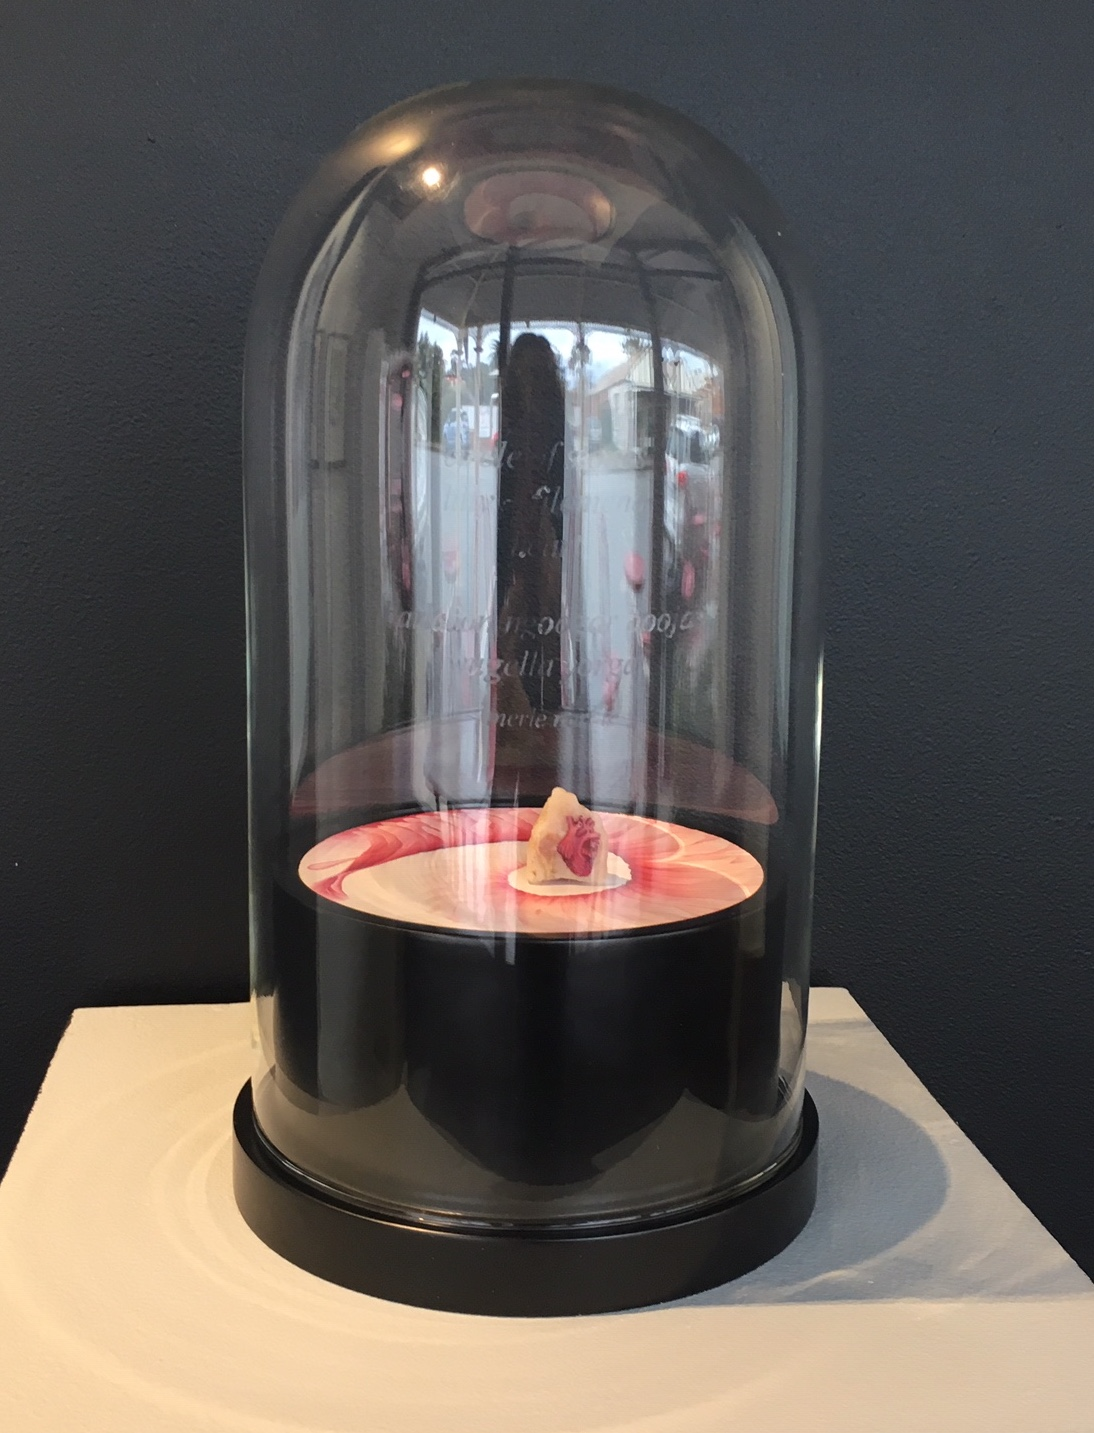 Installation View, Circle of Stones, Gallery 152, York, WA. circle of stones, lilly – filomena, heart. Rose quartz, gouache, colour photograph on dibond, wooden base and etched glass dome with text by Merle Narkle-Goodwin. 15d x 27h cm. 2017-18